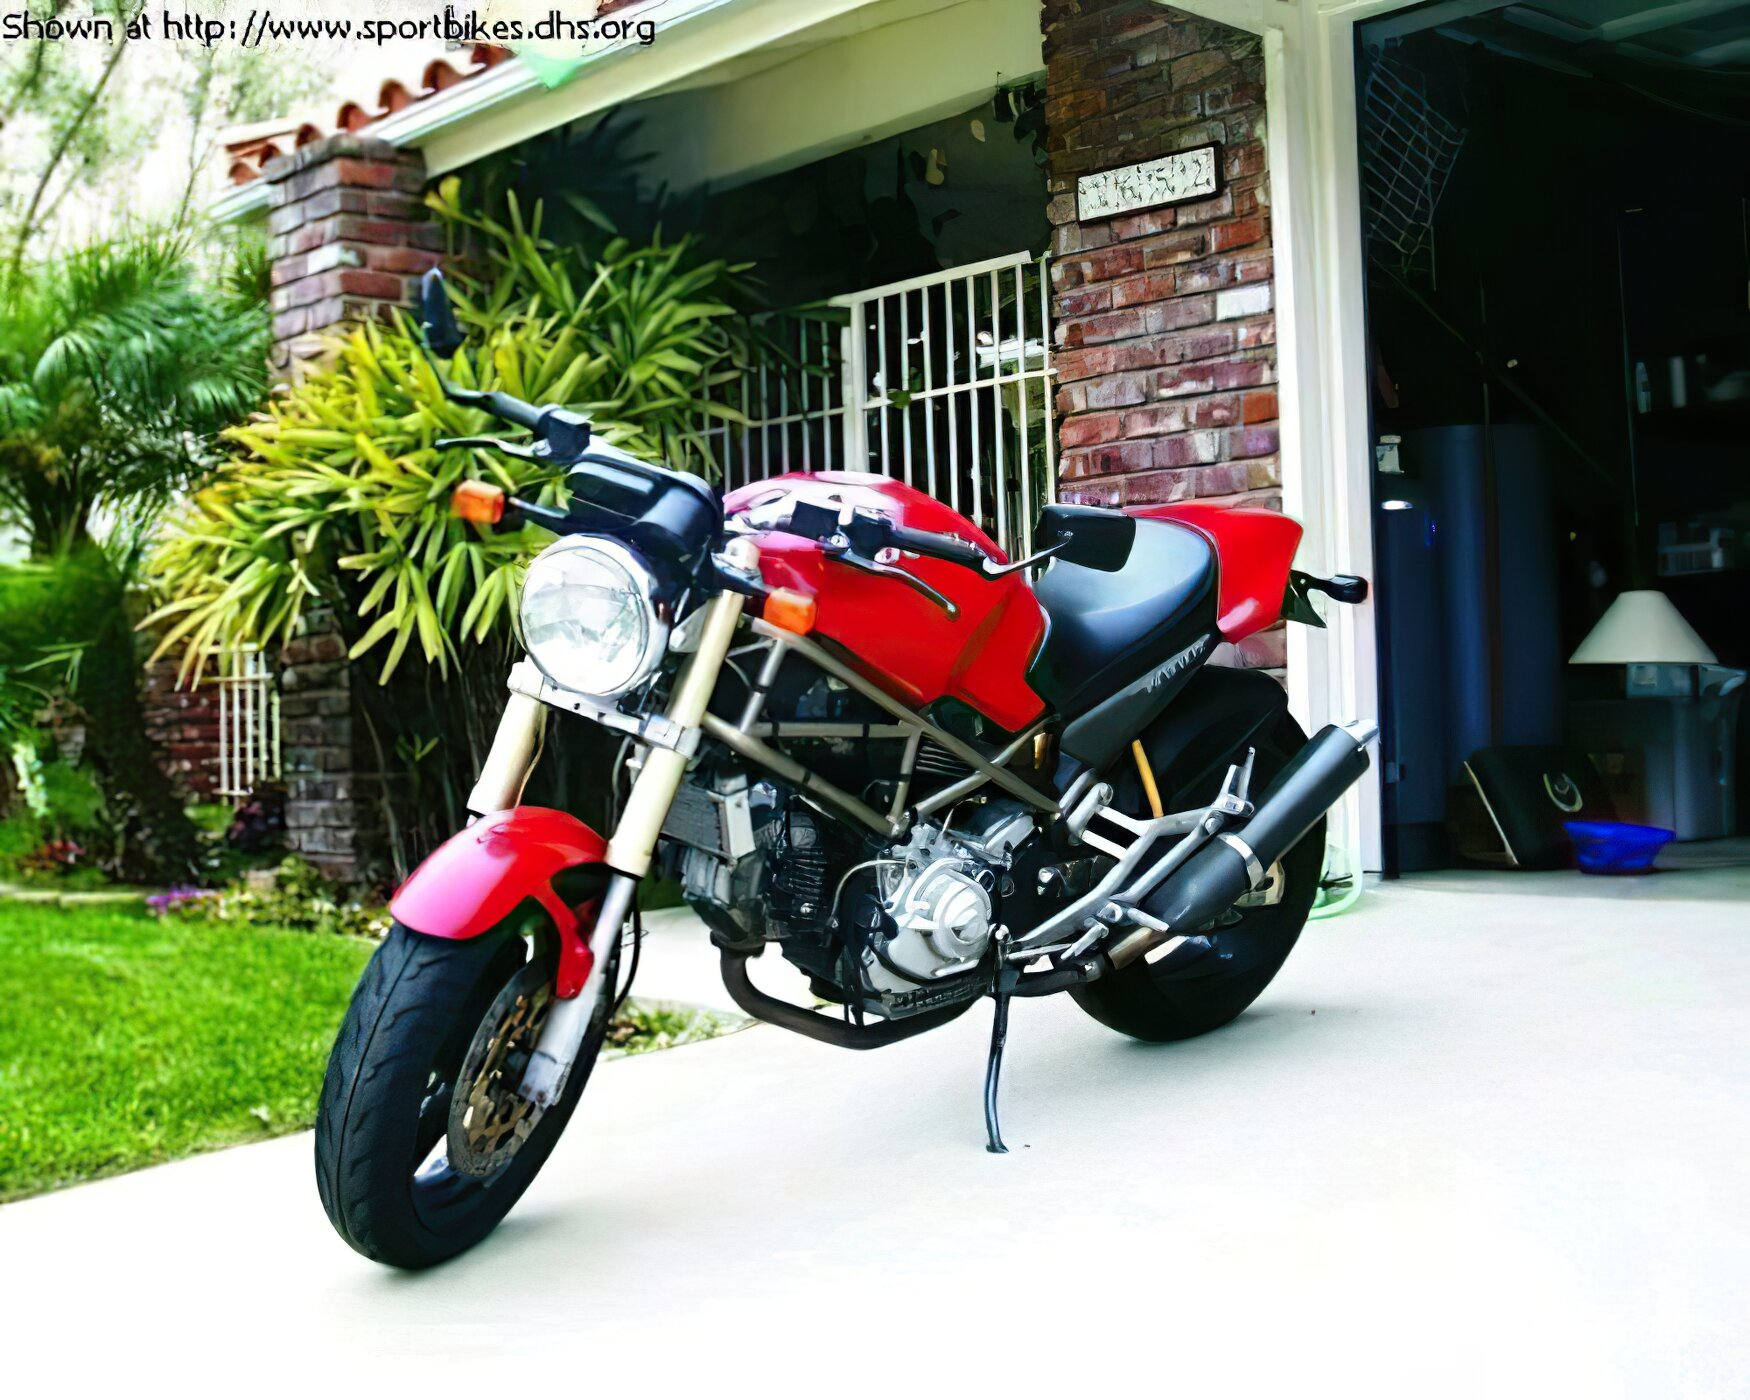 Ducati Monster Models - ID: 3528